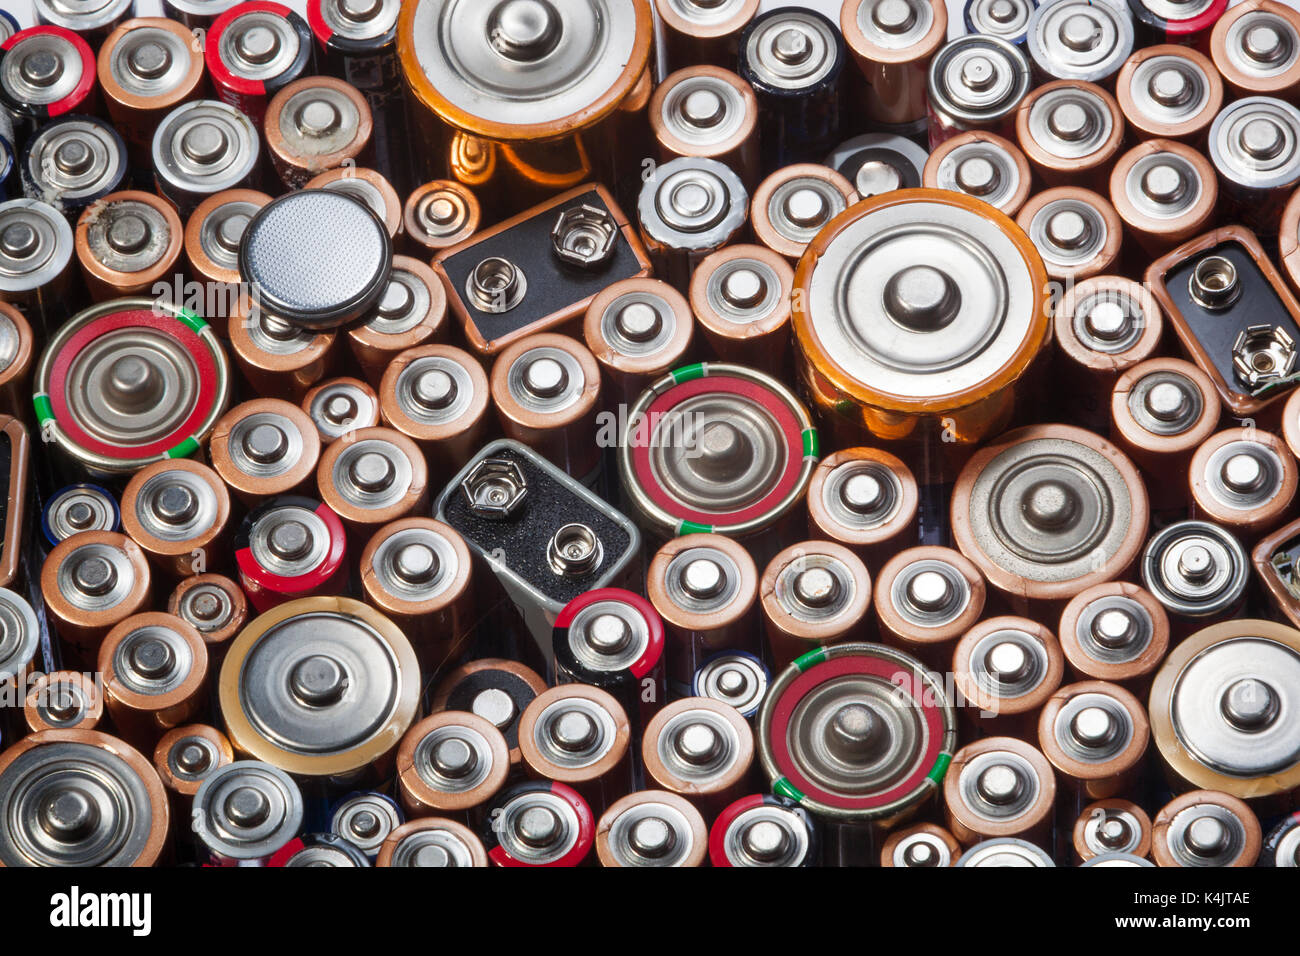 Old used batteries ready for recycling - Stock Image